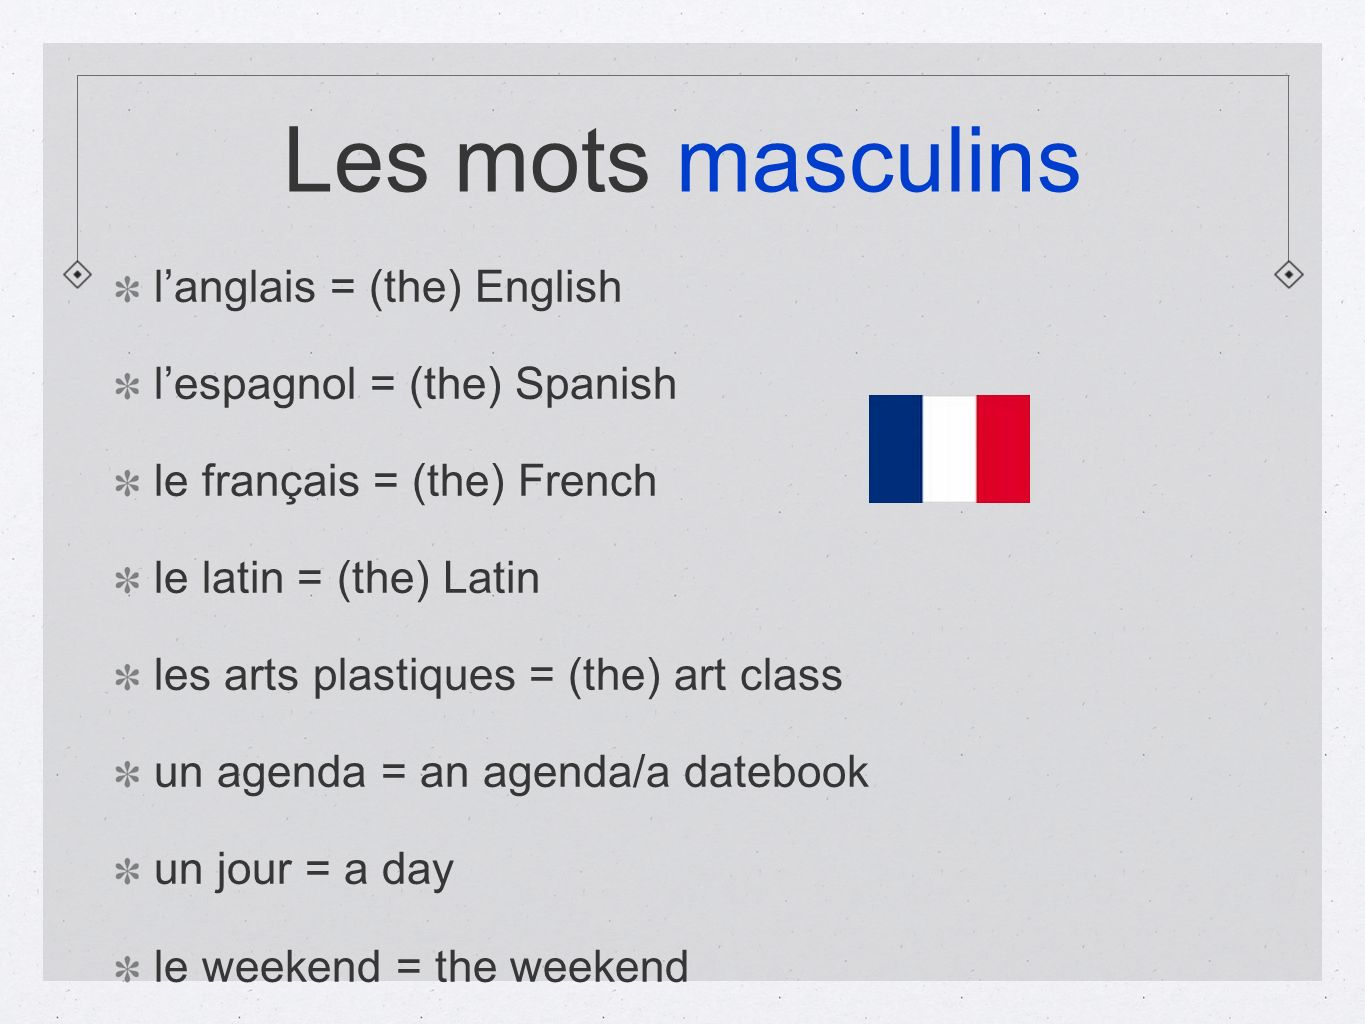 Les mots masculins langlais = (the) English lespagnol = (the) Spanish le français = (the) French le latin = (the) Latin les arts plastiques = (the) ar